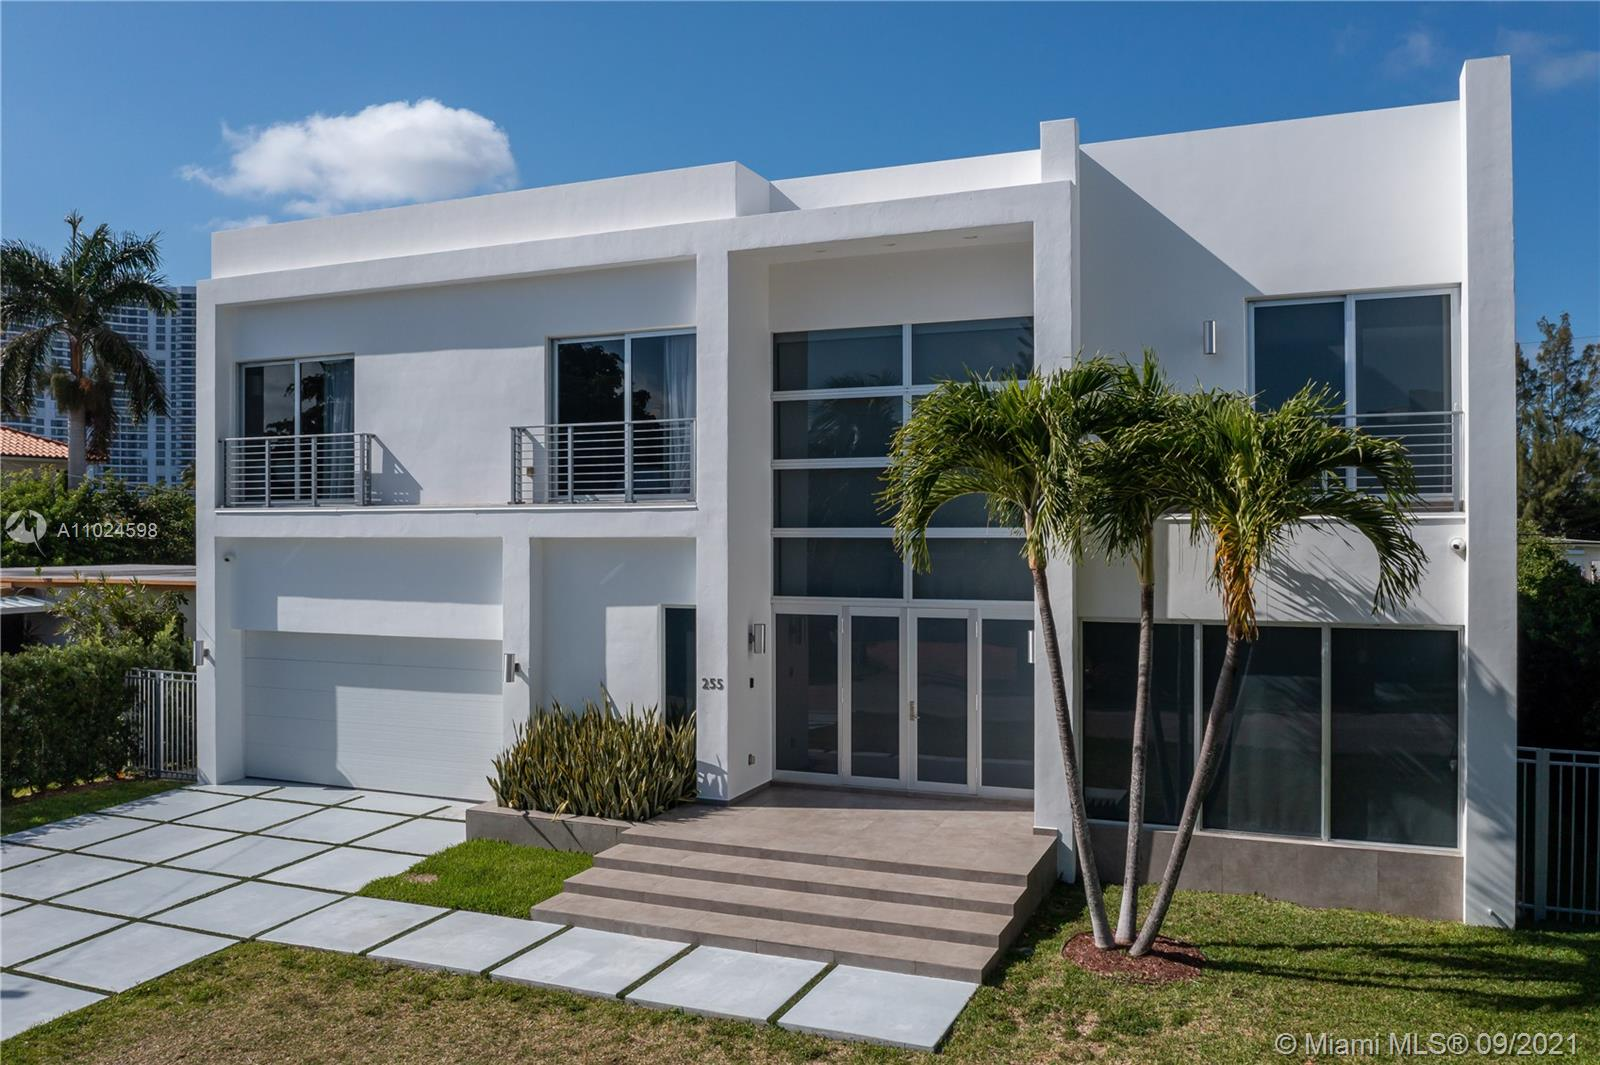 Stunning contemporary masterpiece built-in 2017 being offered fully furnished with high-end Italian furnishings. No expense was spared in this home's interior utilizing luxurious finishes to complement its open concept floor-plan. Spanning over 5,000 s/f of living, Florense kitchen with Carrara marble tops & subzero appliances, impact windows/doors, frameless soundproof interior doors & custom Italian closets, elegant European wallpaper, a master BD wing w/ his & hers closets, Smart Home tech with Lutron lighting and exterior camera system, upscale light fixtures & window treatments, spacious heated pool with wood deck and covered patio entertainment area. Located in desirable Sunny Isles Beach steps from ocean, houses of worship, elegant restaurants & shopping. A+ School District.